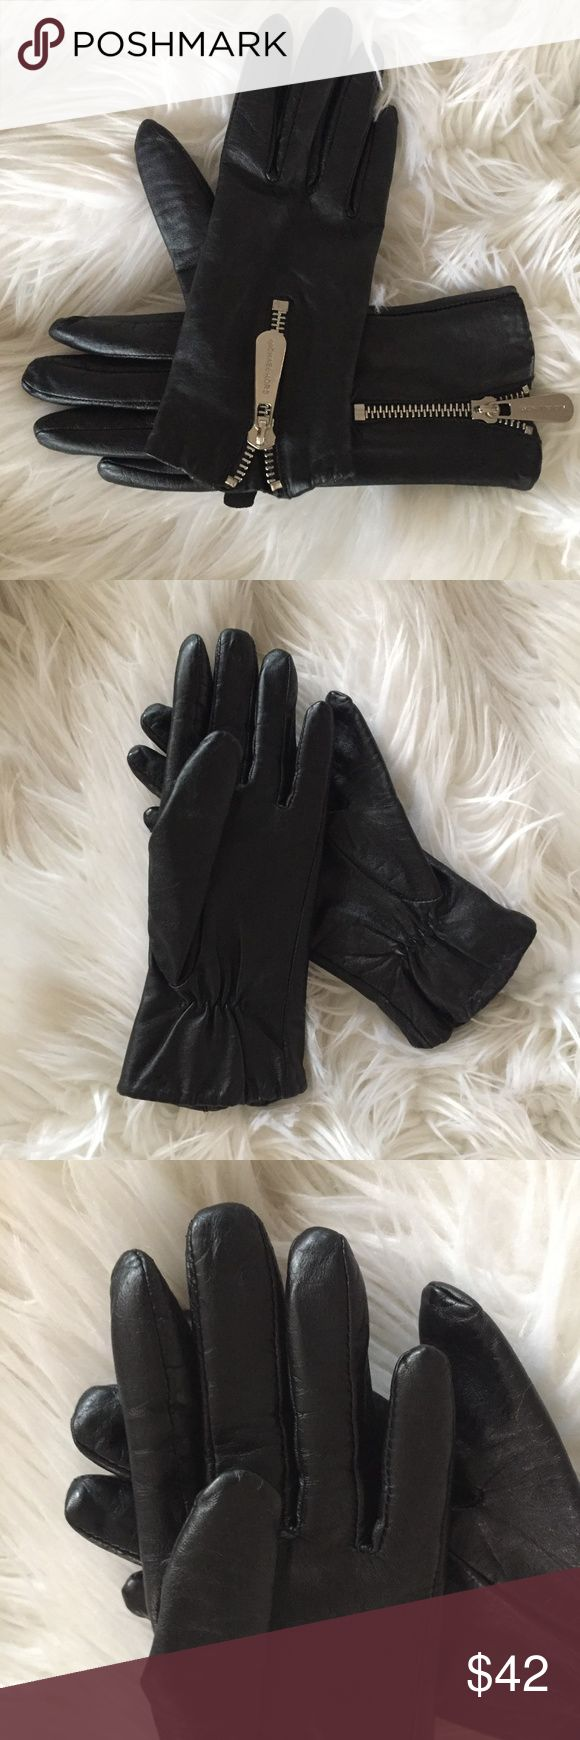 Michael kors calf leather gloves So soft and luxurious. New without tags. Michael Kors Accessories Gloves & Mittens